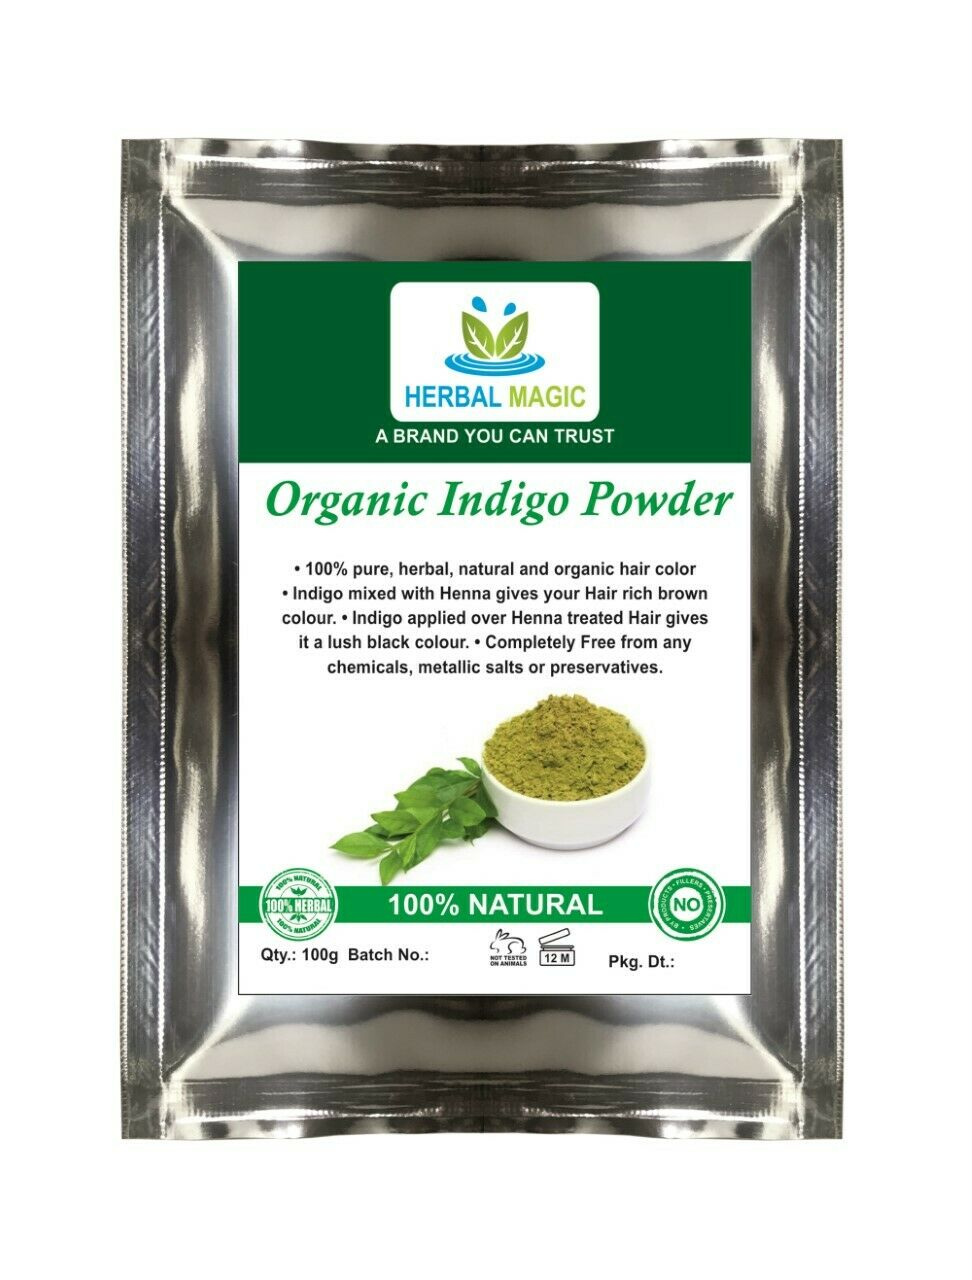 100% PURE NATURAL& PESTICIDE FREE 500G ORGANIC CERTIFIED INDIGO POWDER HAIR DYE